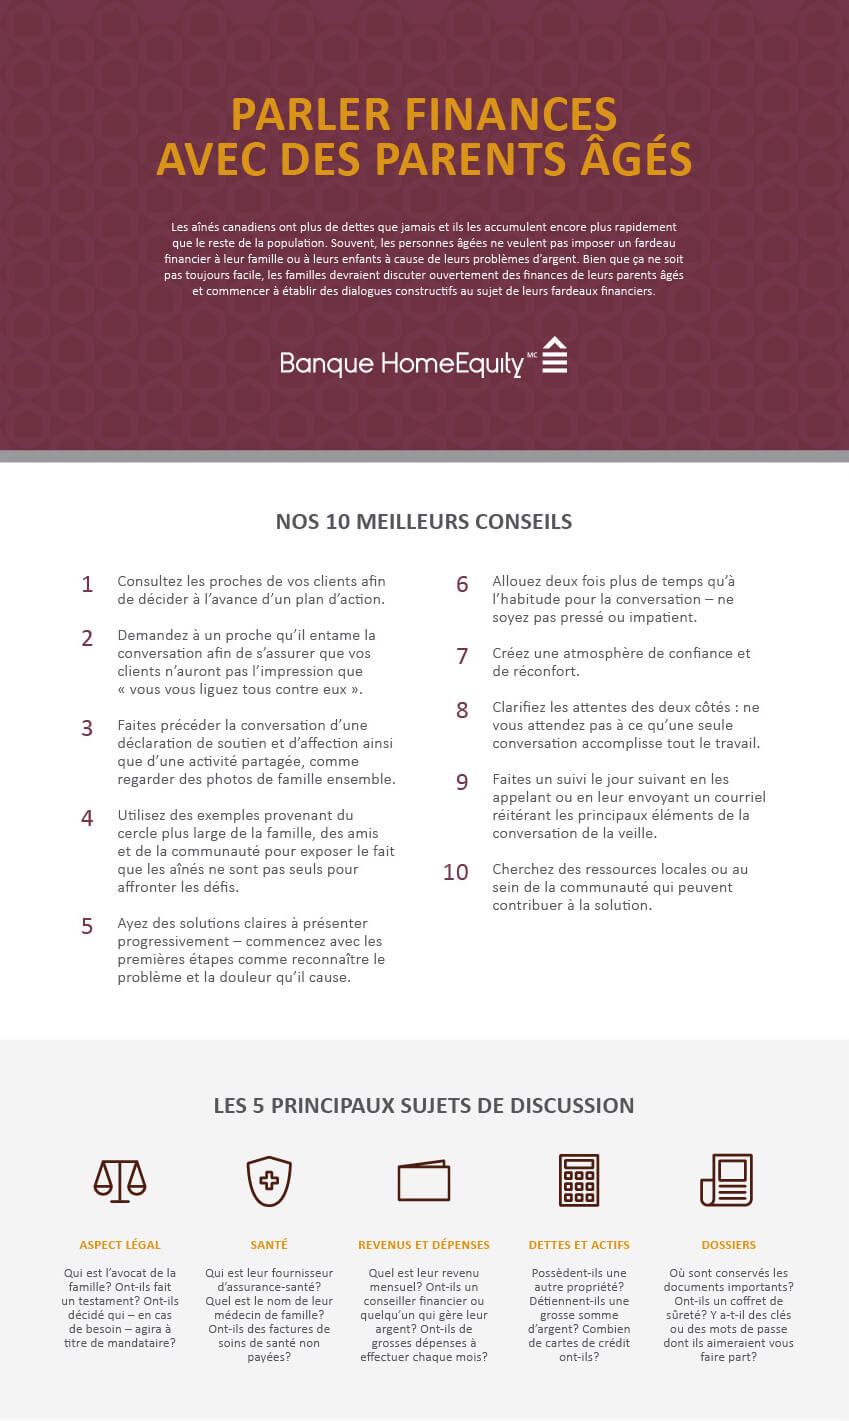 bhe-01_parents_finance_infographic_ffrench